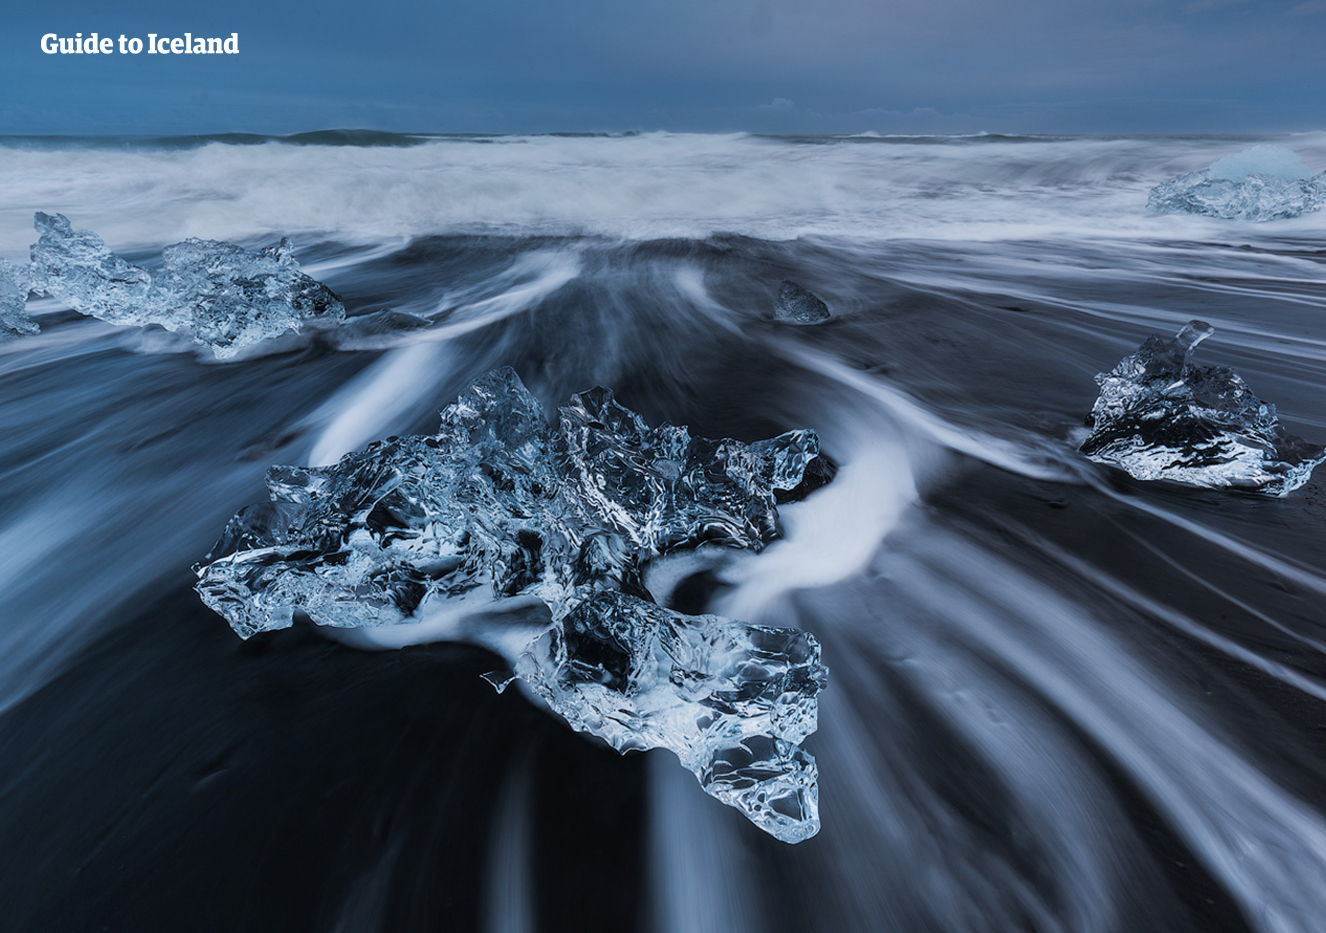 11 Day Budget Self Drive Tour of the Complete Ring Road of Iceland with the East Fjords & Myvatn - day 3